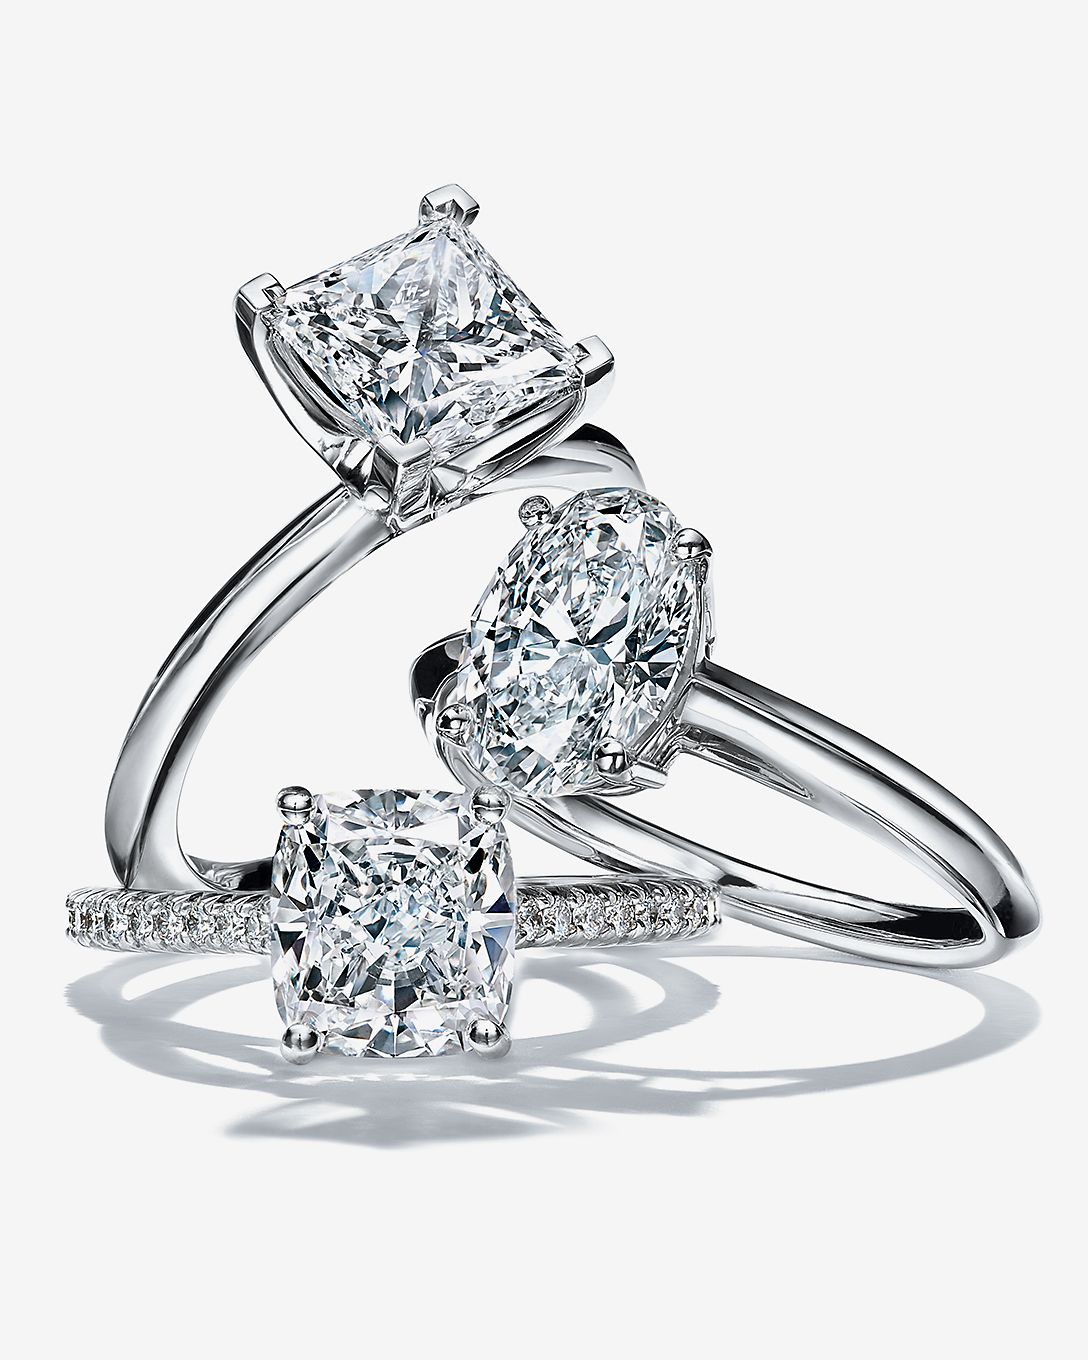 Engagement Ring Styles & Settings